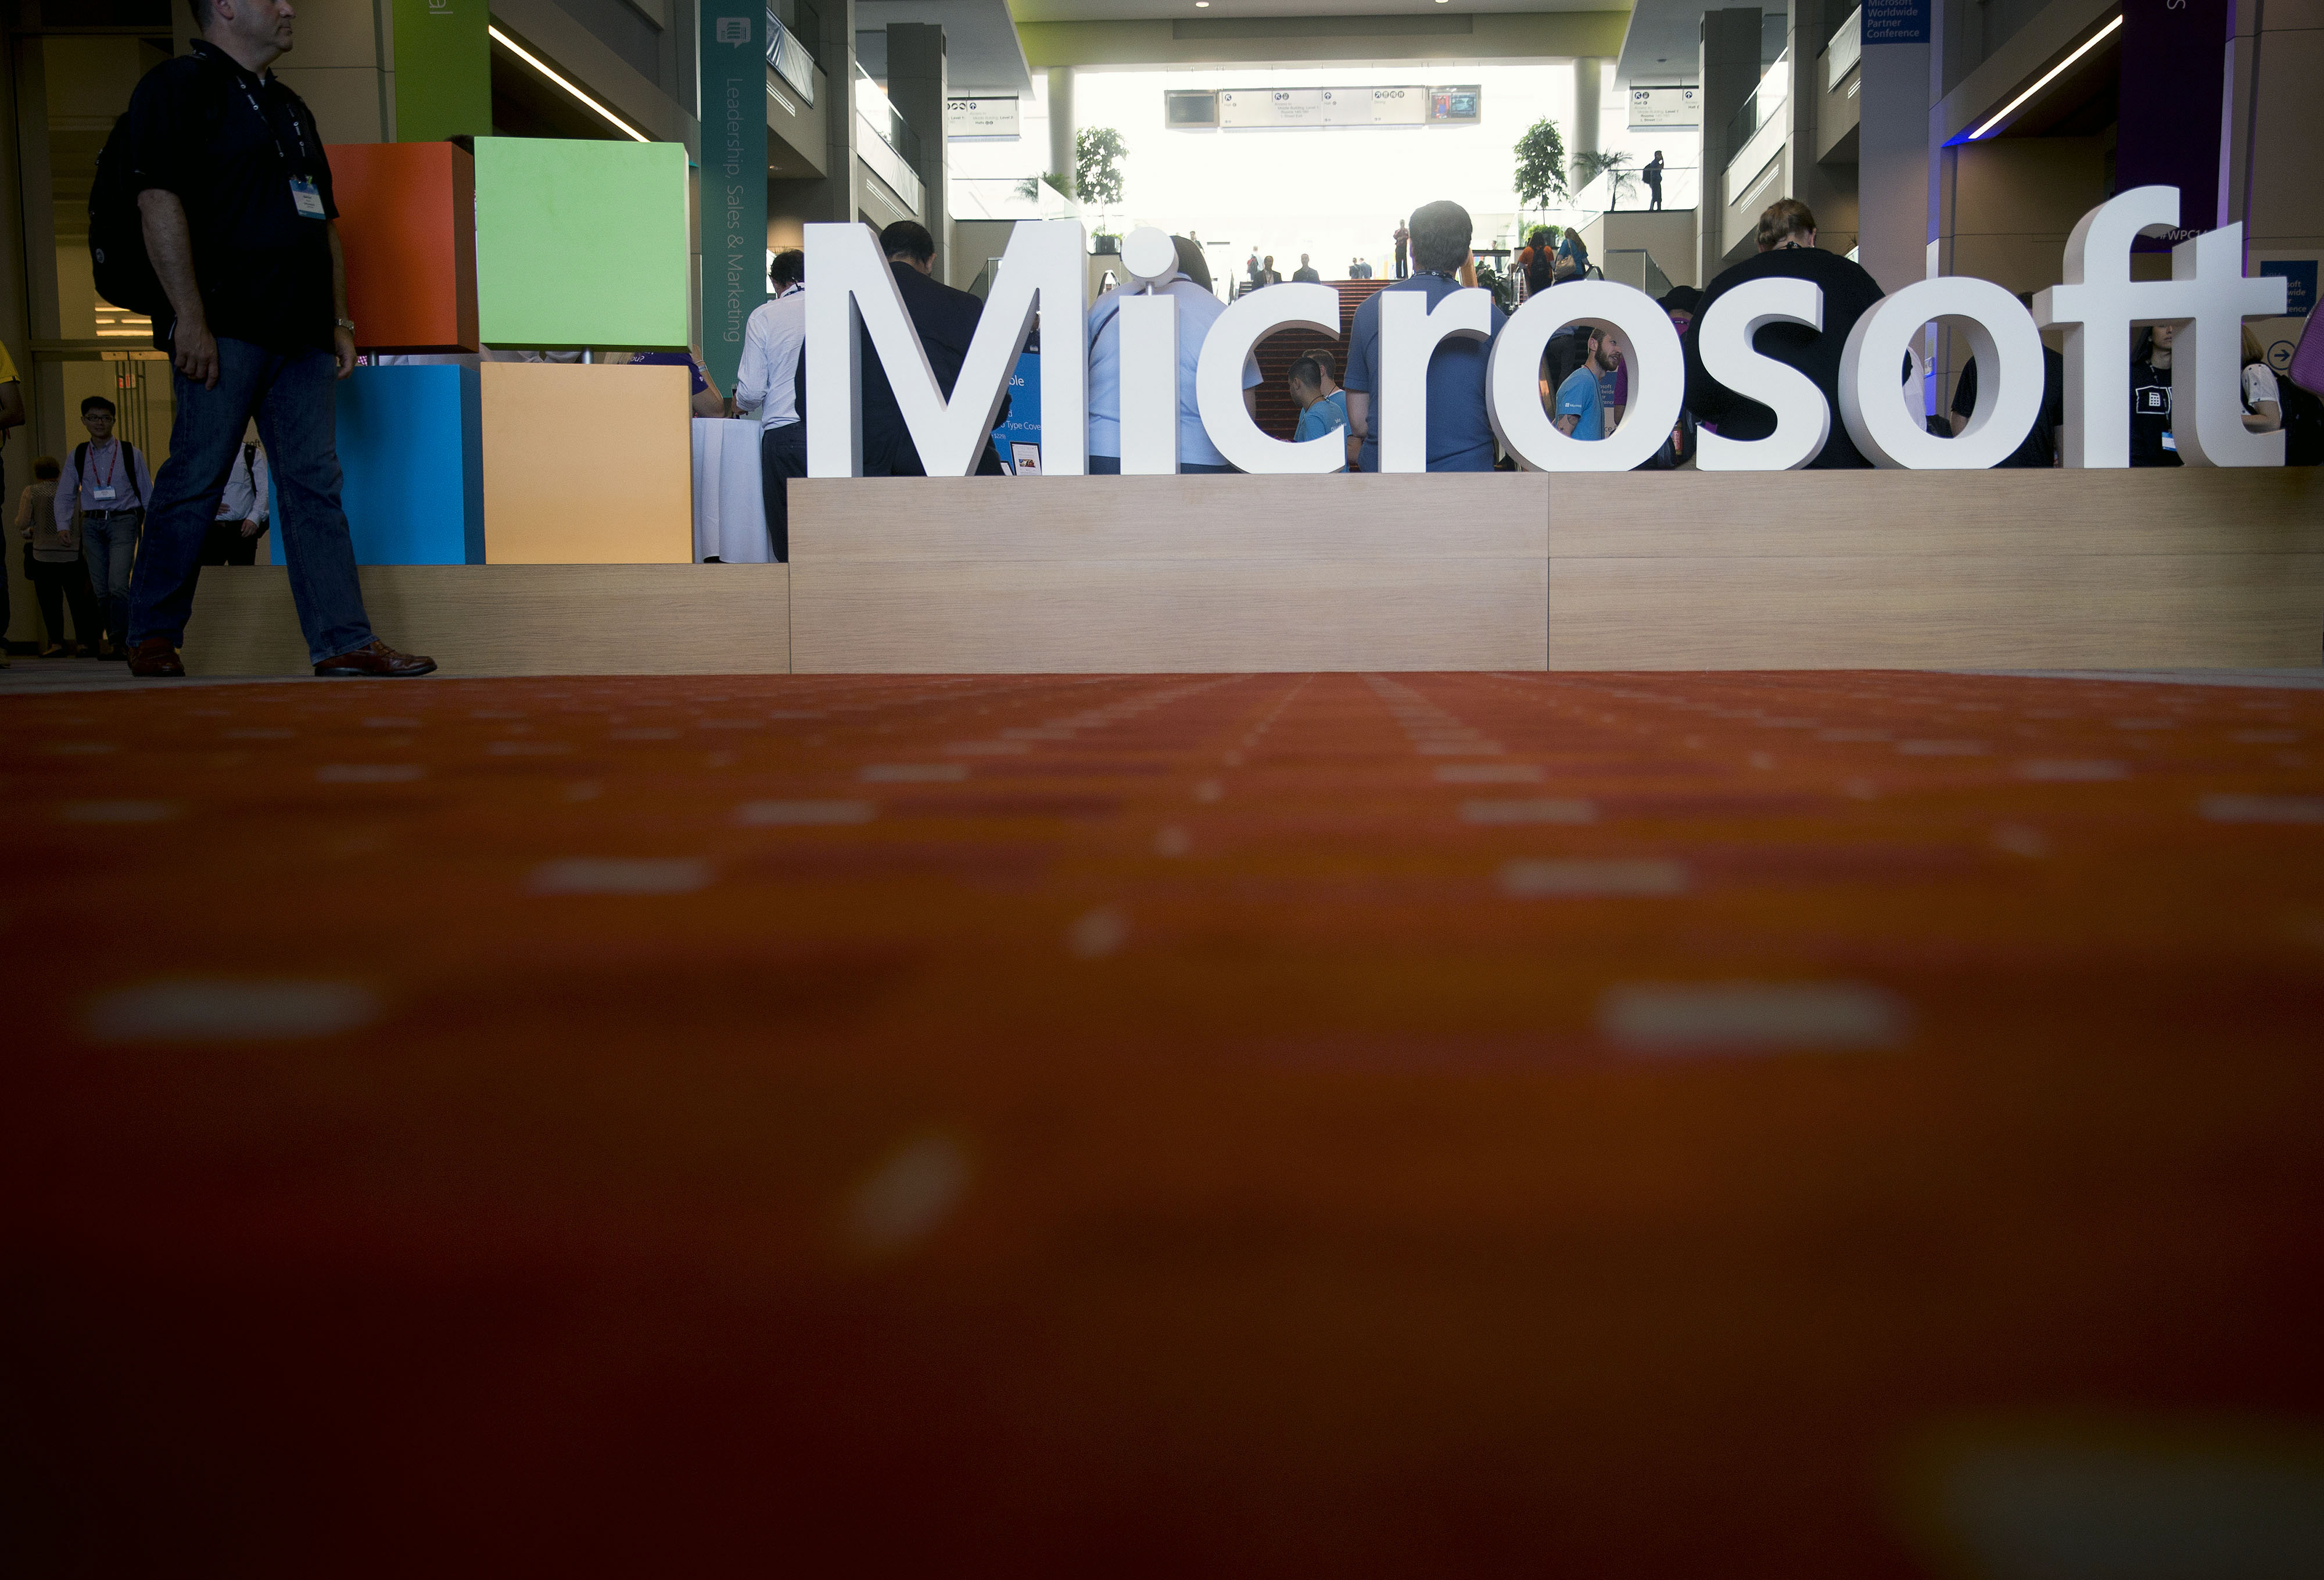 The Microsoft Corp. logo sits on display during the Microsoft Worldwide Partner Conference in Washington on July 16, 2014.